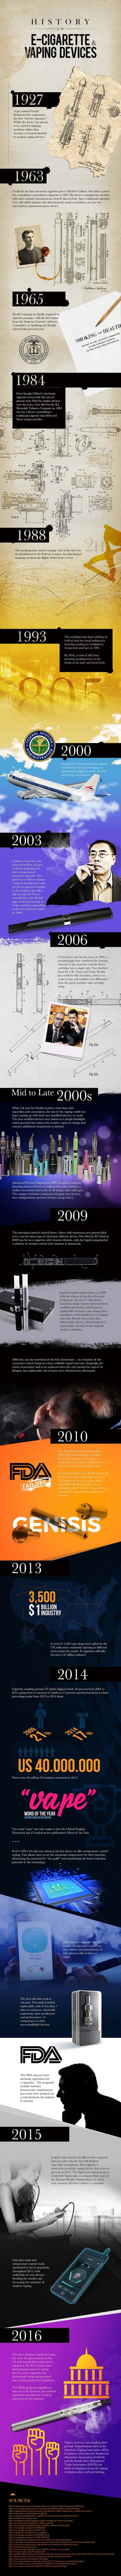 History of Vaping and the E-Cigarette Infographic